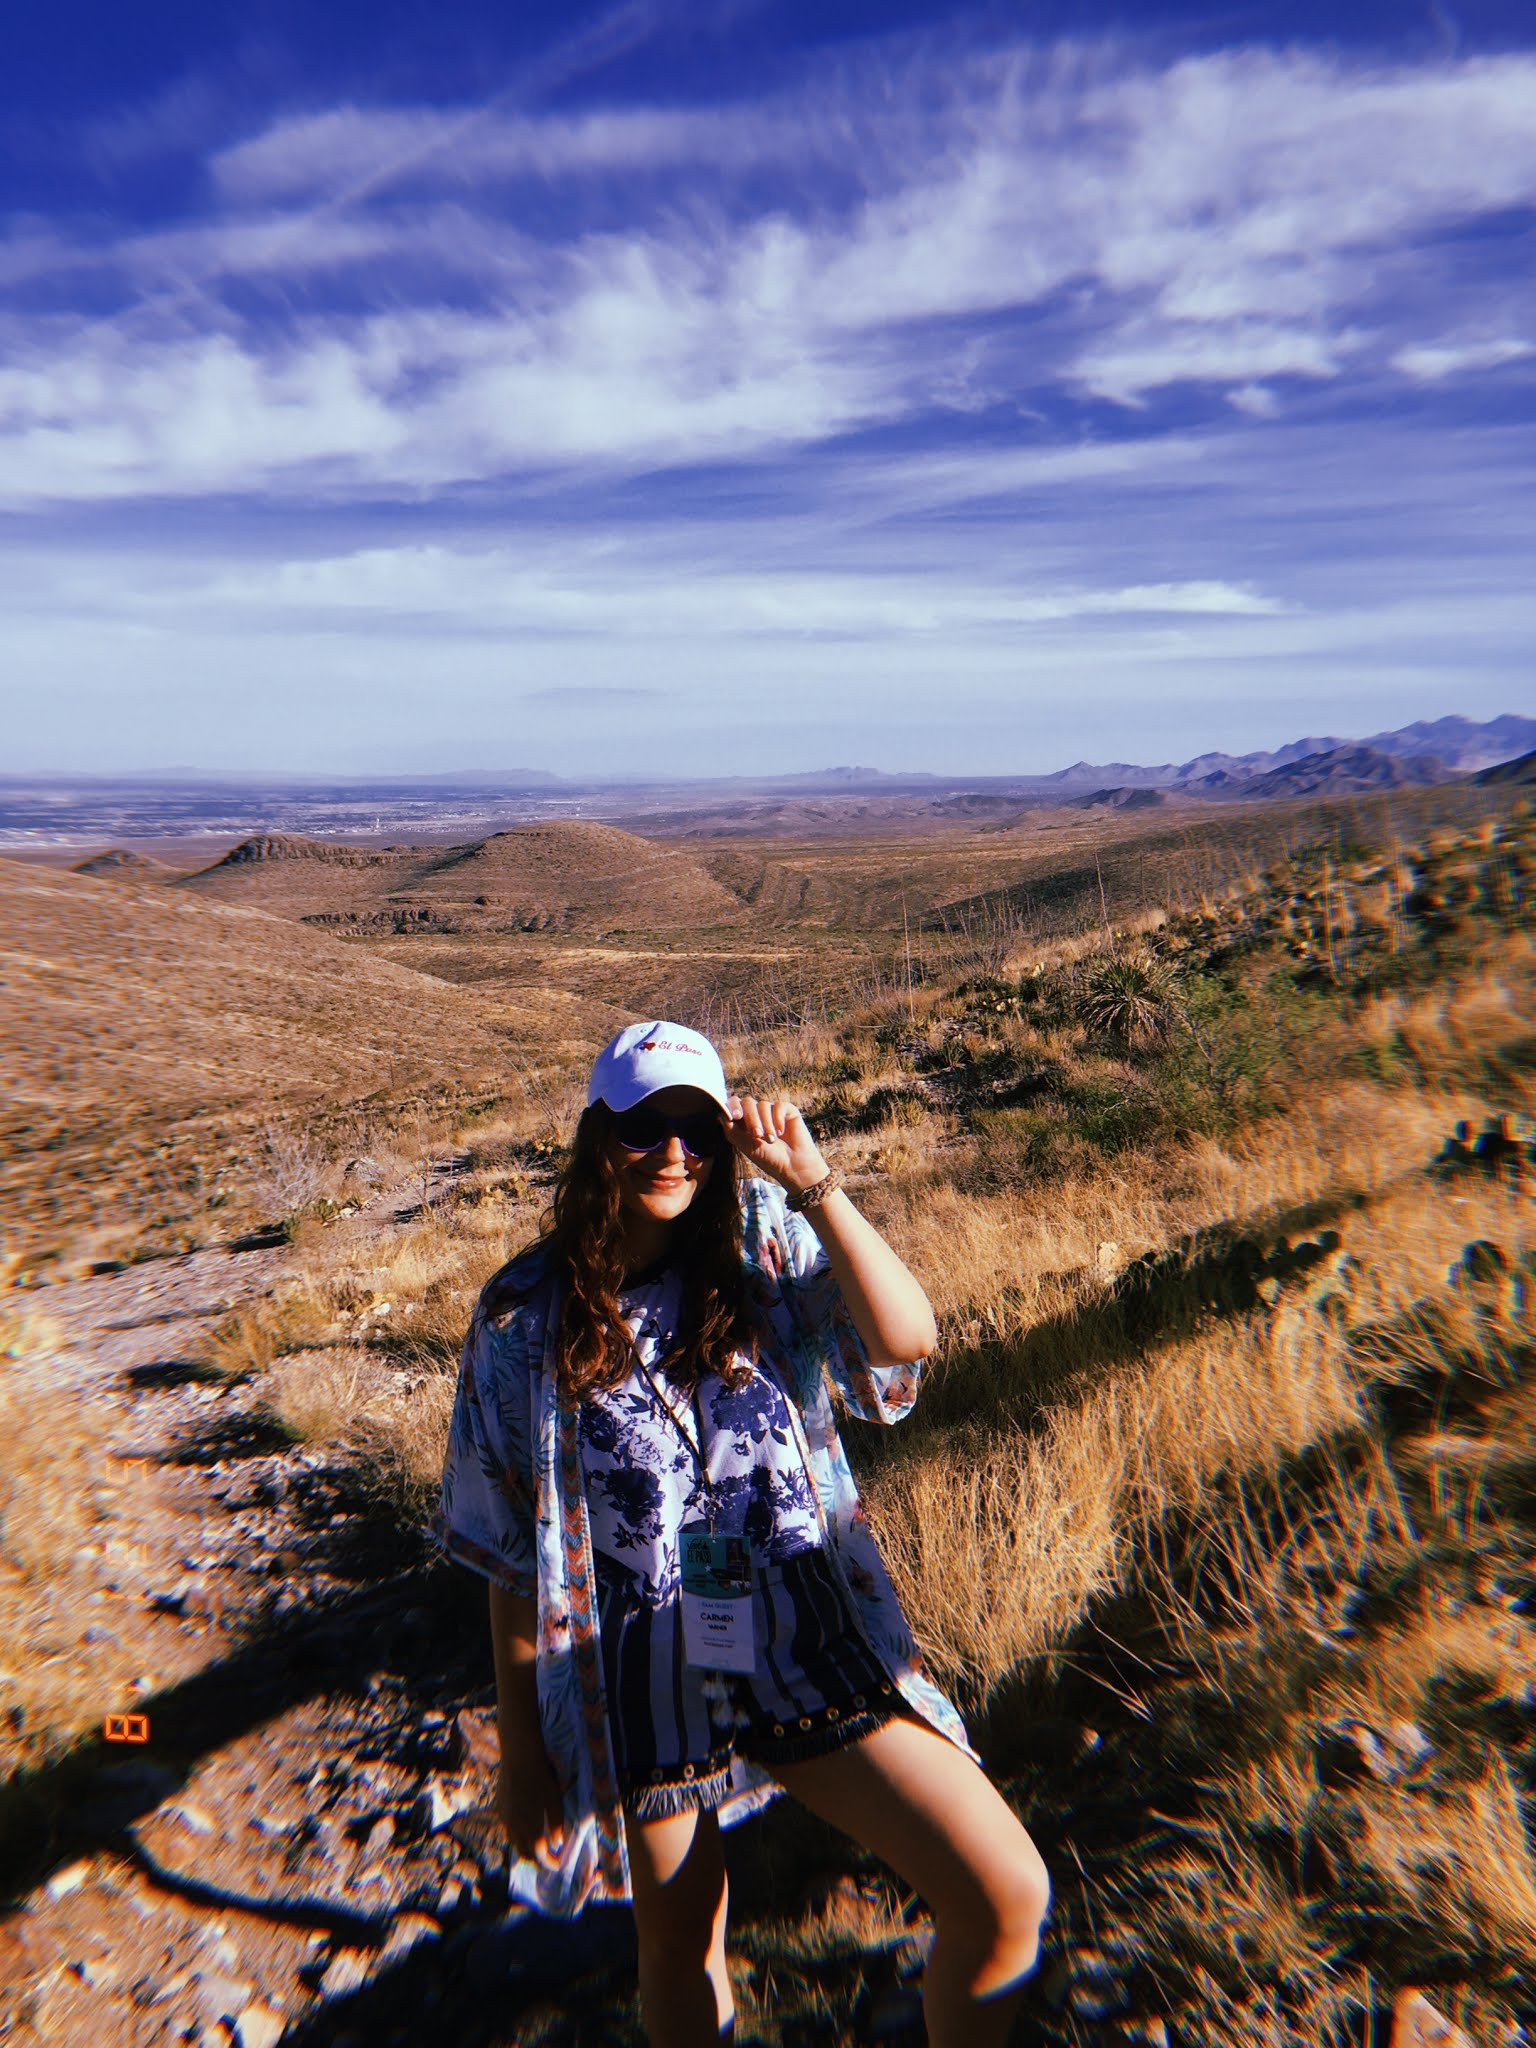 Things To Do at Franklin Mountains State Park in El Paso, Texas